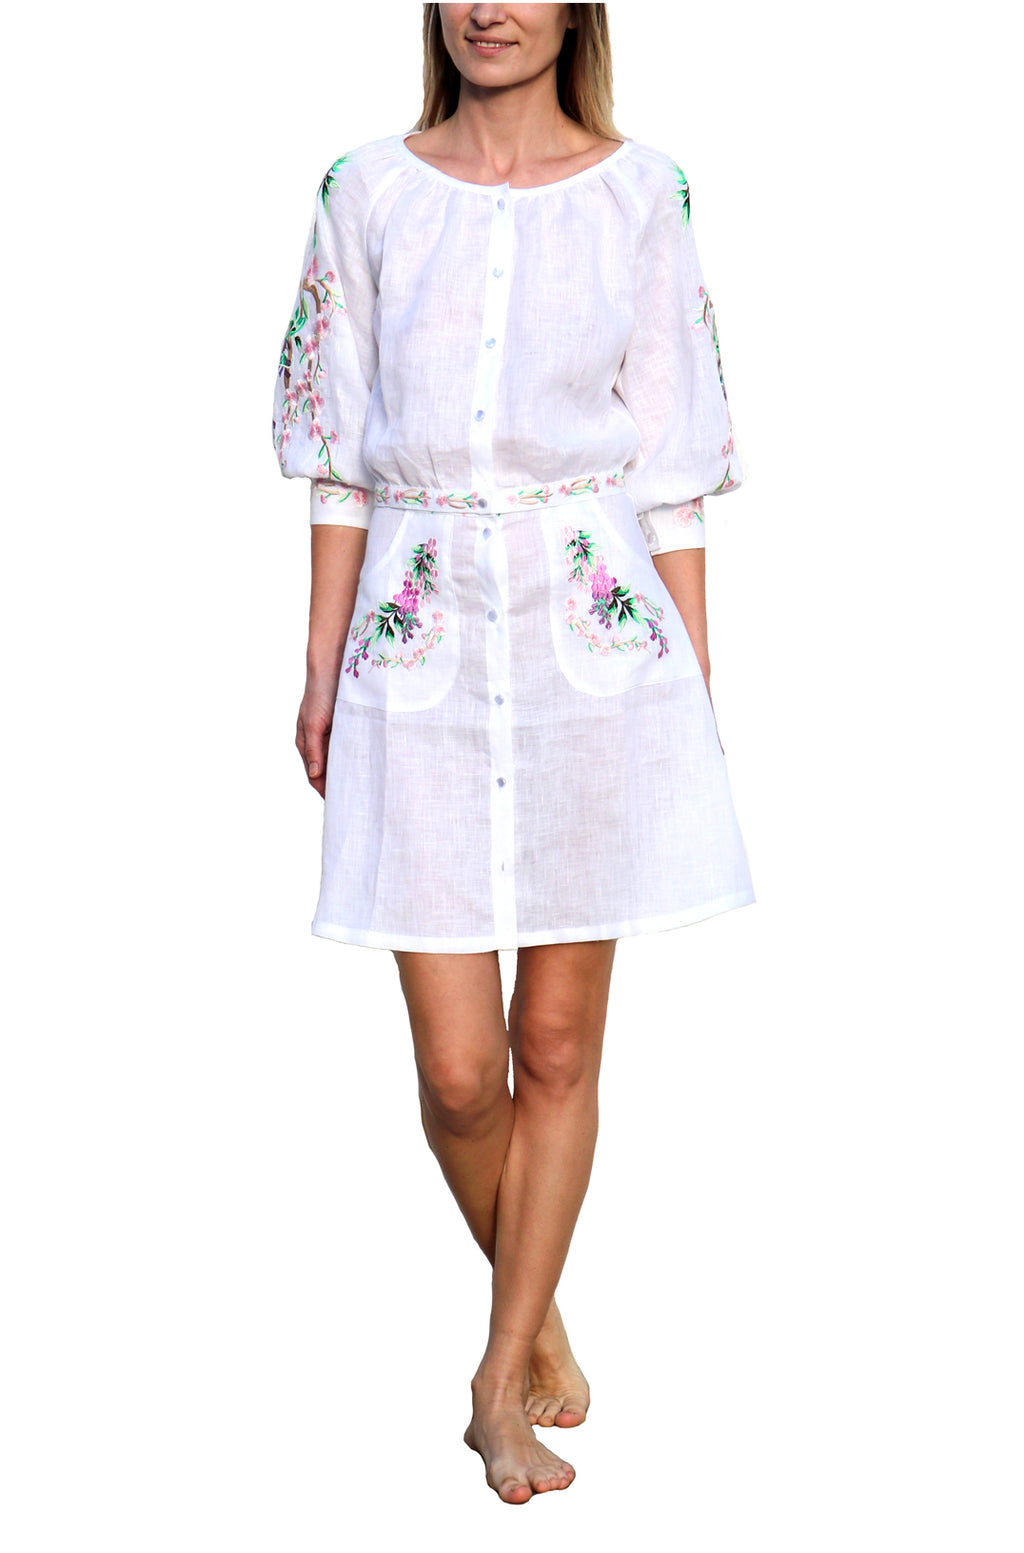 FANM MON Mimose 2 Piece White Embroidered Linen Skirt Set